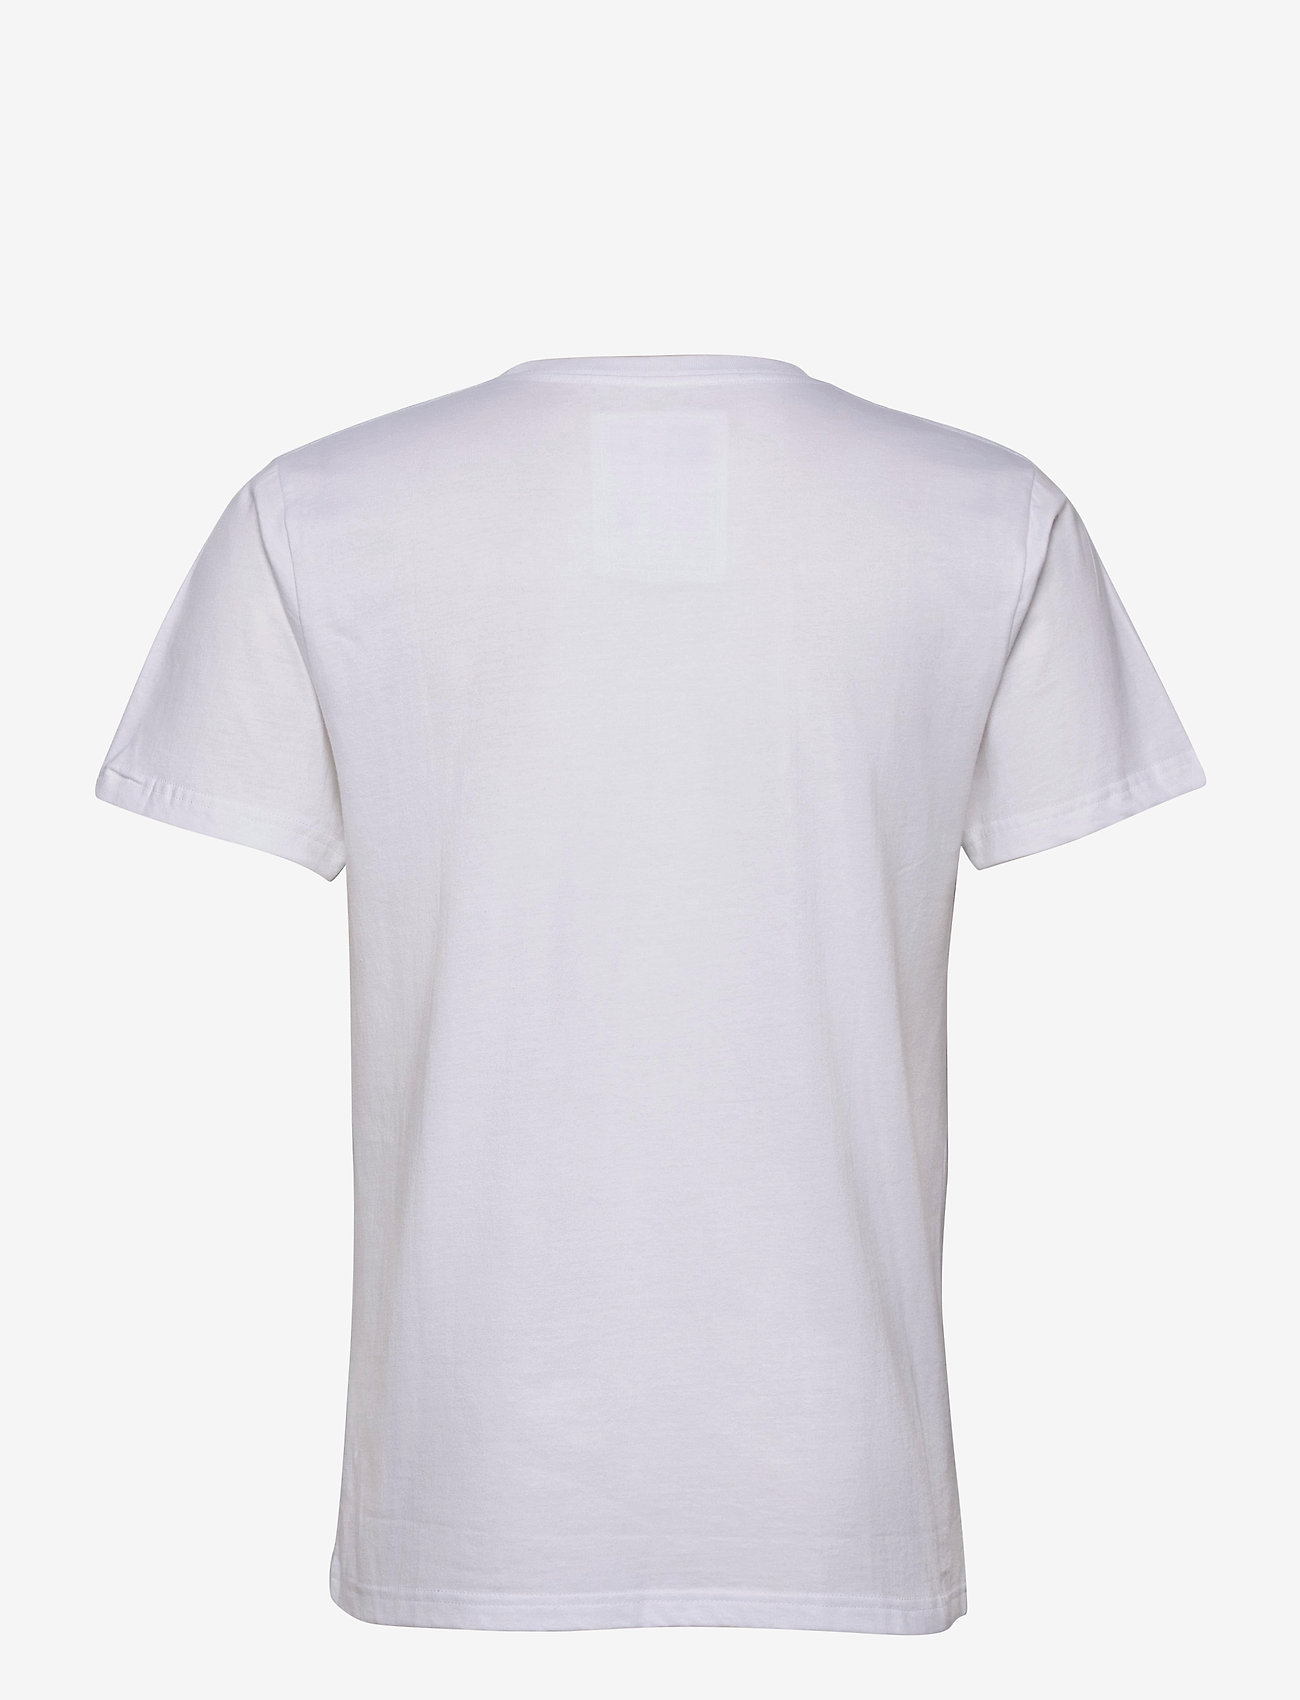 T-shirt Stockholm Ocean Silence (White) (19.22 €) - DEDICATED KHFss